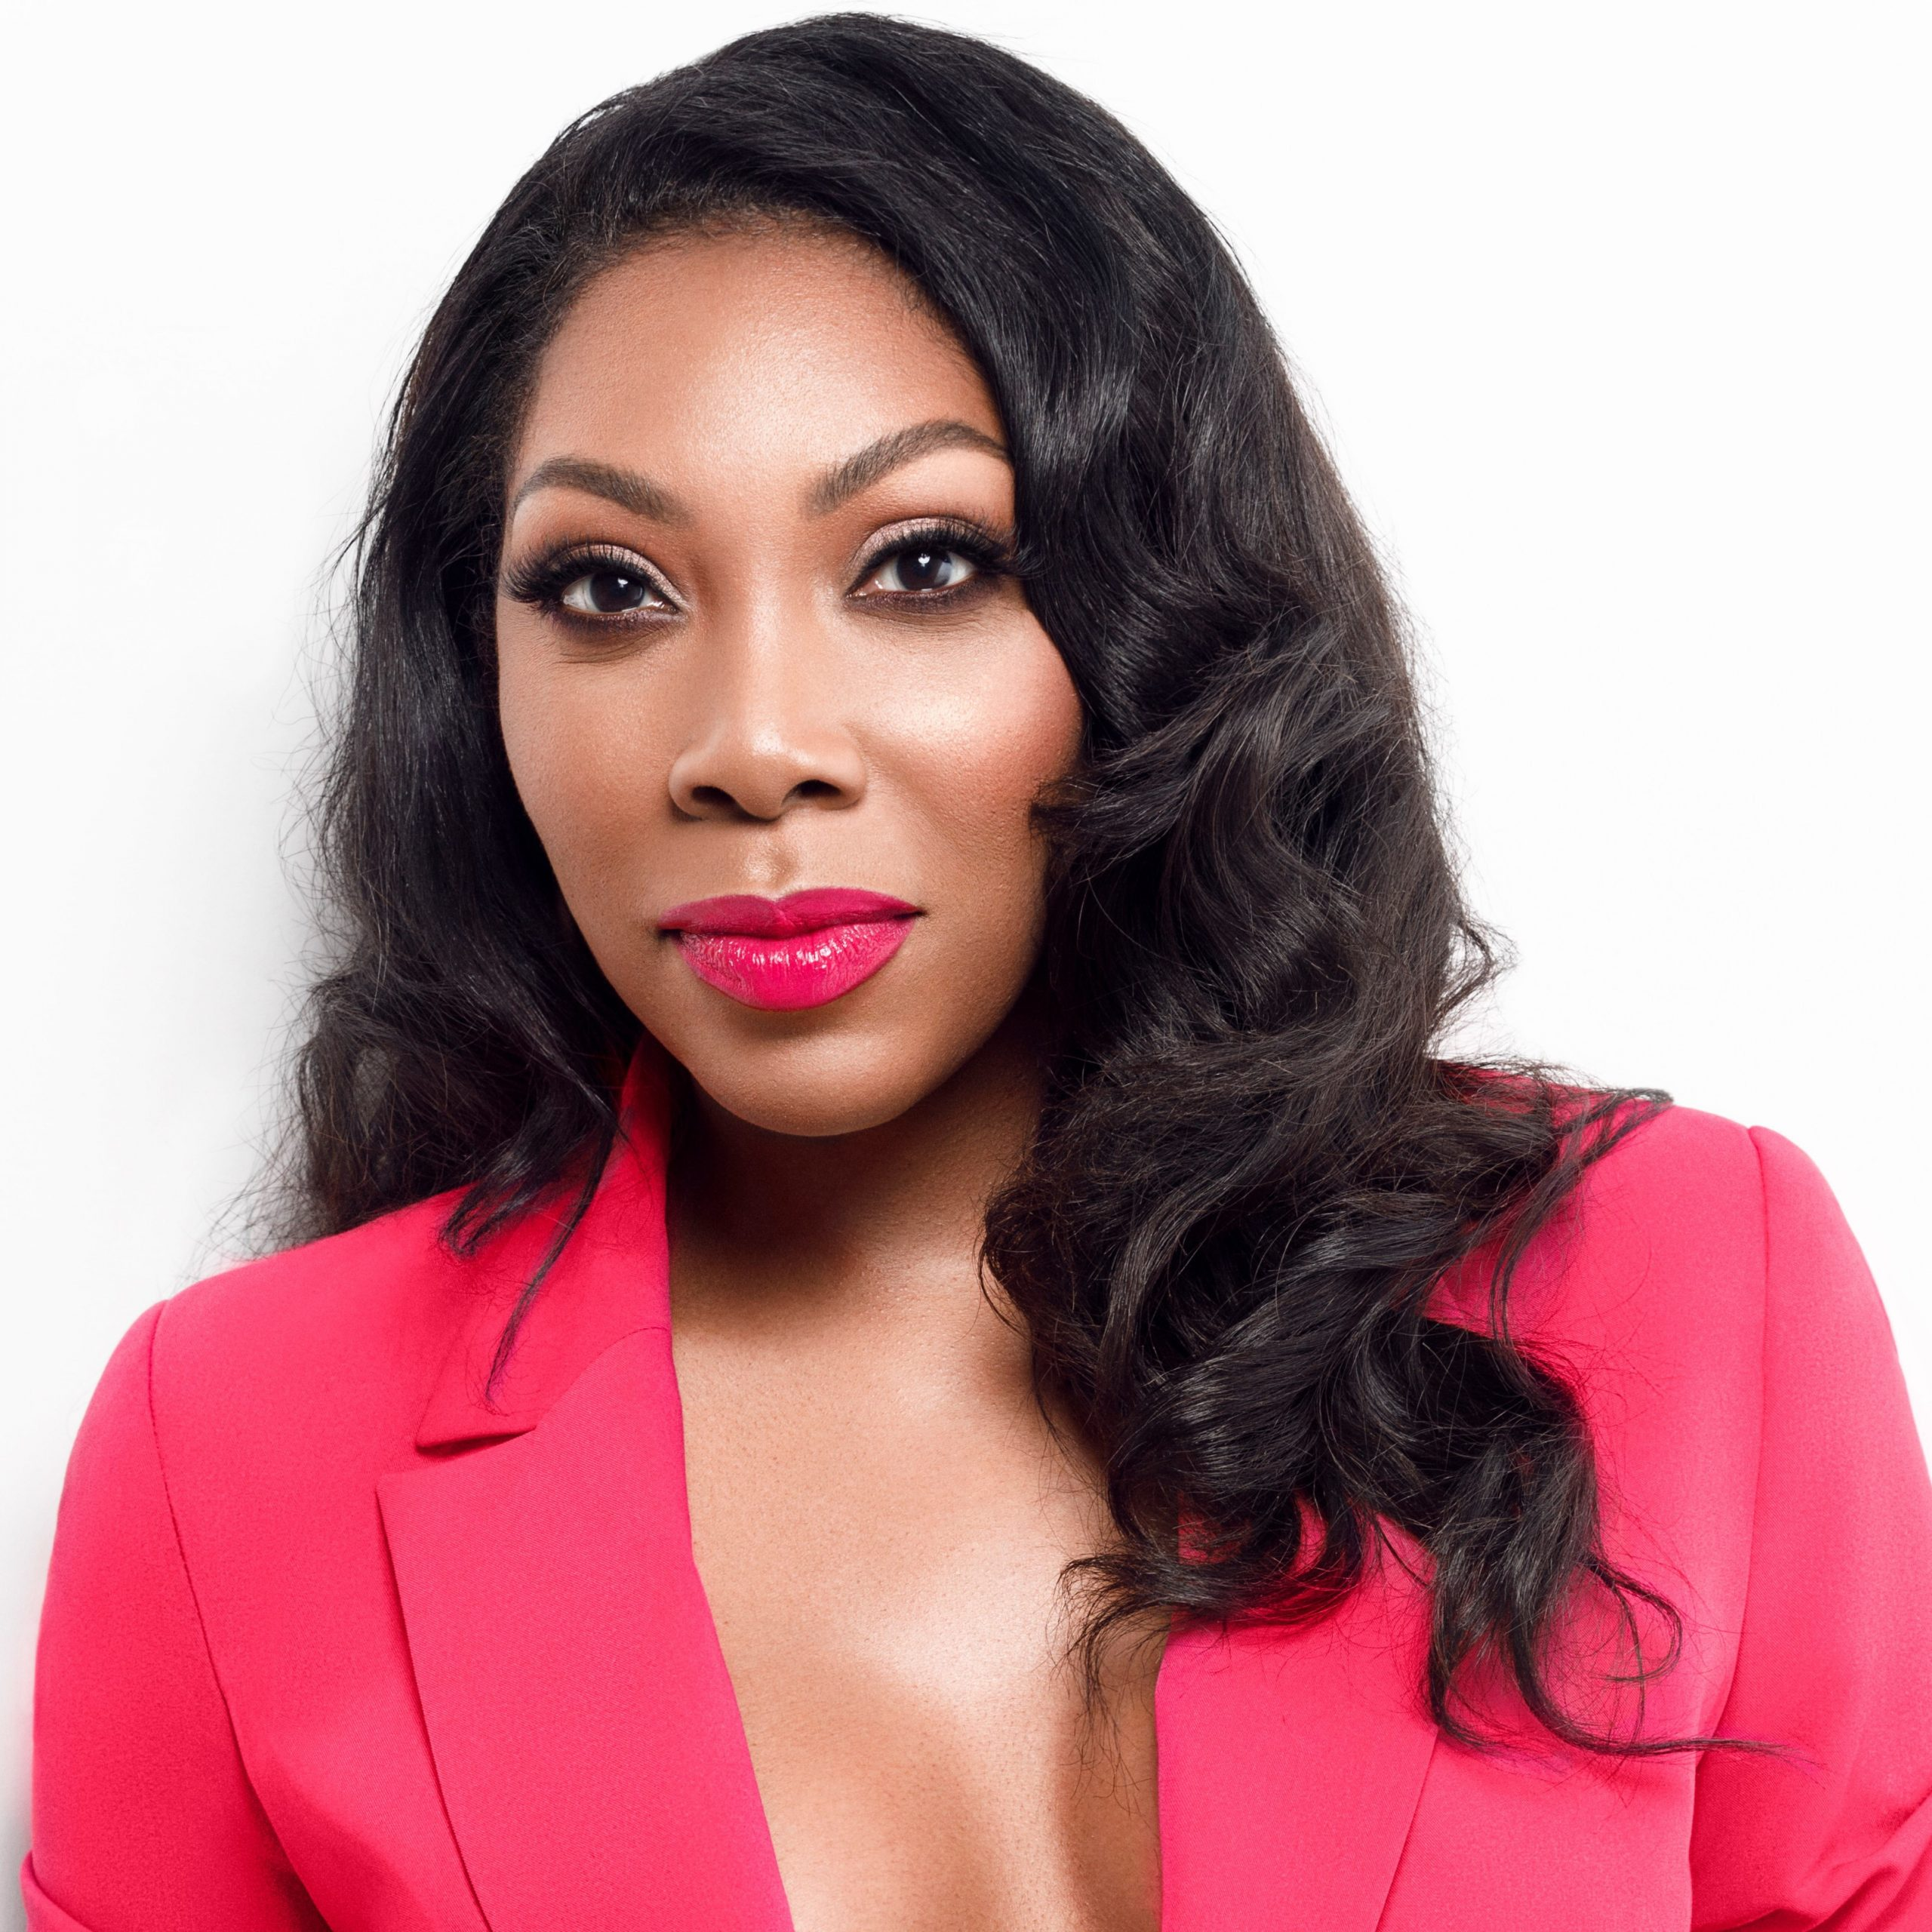 Marjani Beauty Founder Kimberly Smith on Black & Brown Representation in the Beauty Industry